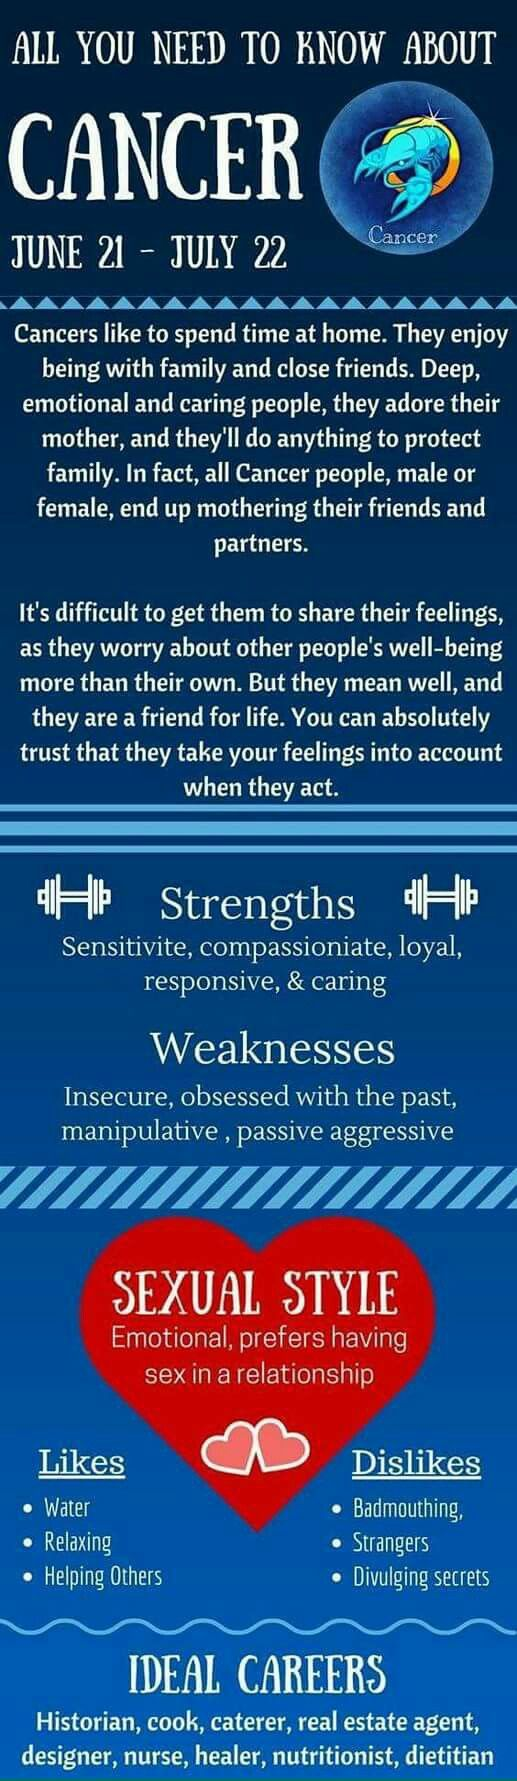 Pin By Aashvi Agarwal On Cancergang Cancer Quotes Zodiac Astrology Cancer Cancer Zodiac